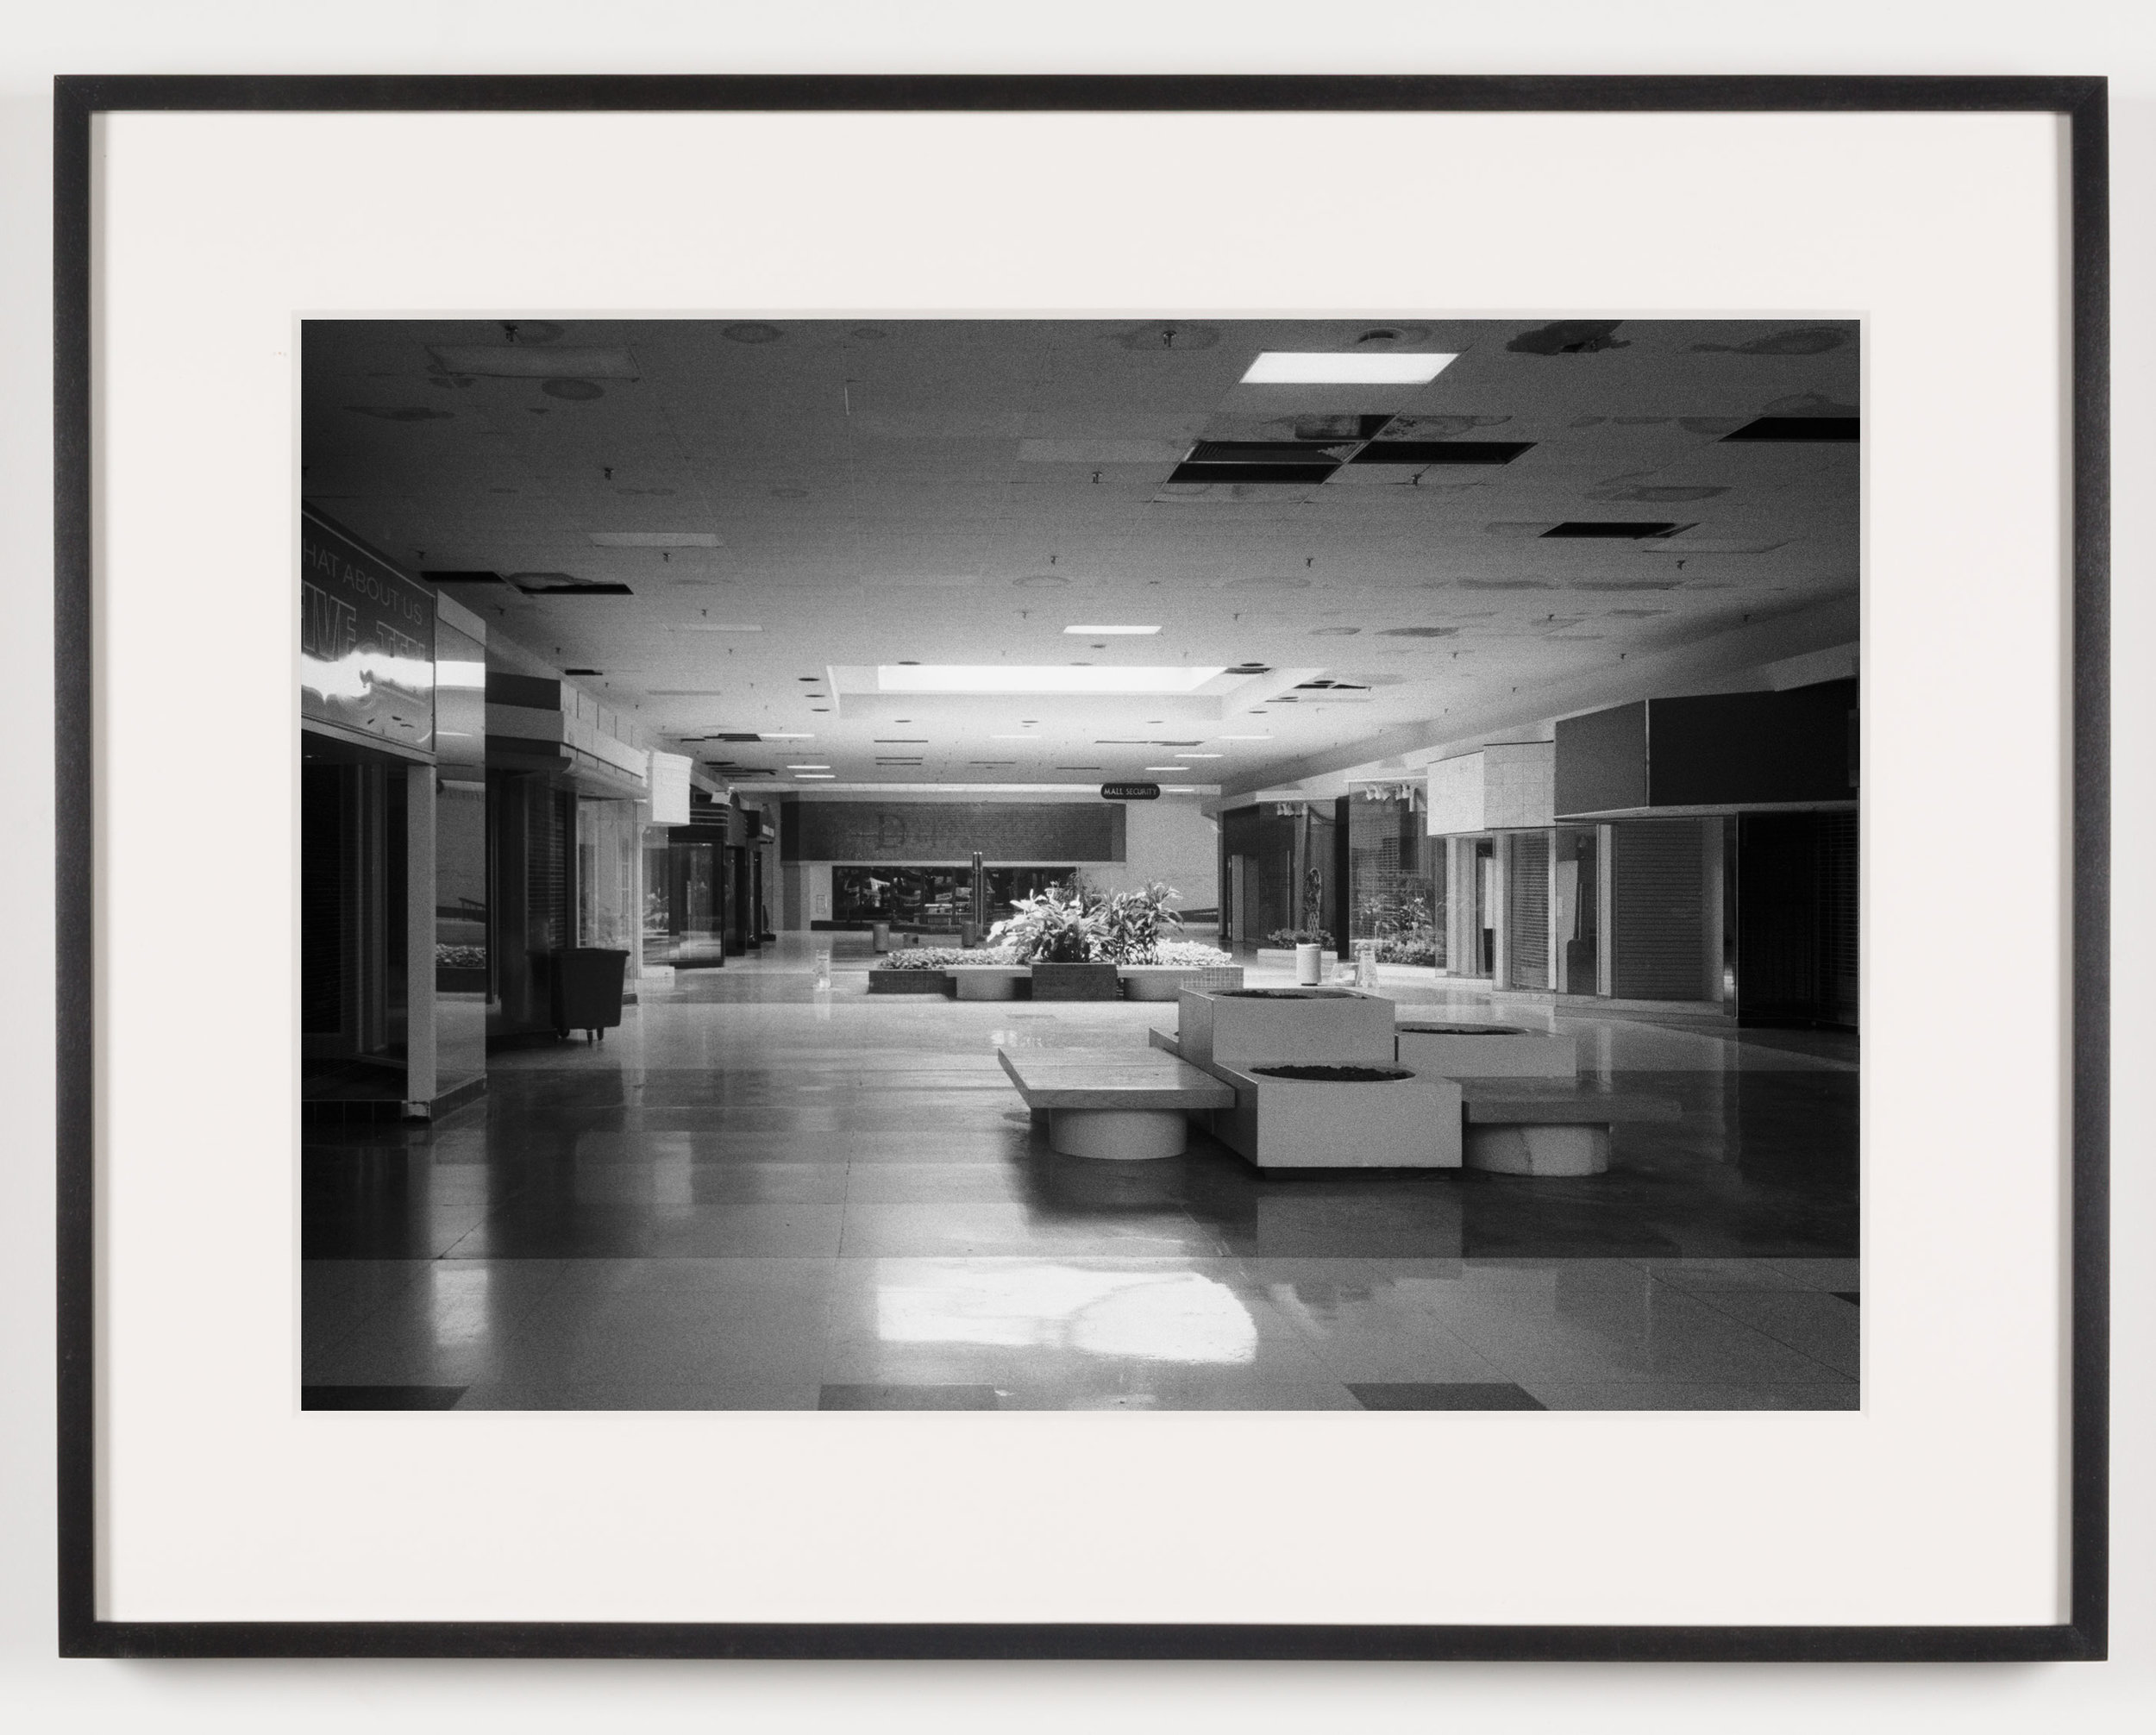 Rolling Acres Mall ('Dillards') Akron, OH, Est. 1975   2011  Epson Ultrachrome K3 archival ink jet print on Hahnemühle Photo Rag paper  21 5/8 x 28 1/8 inches   American Passages, 2001–2011    A Diagram of Forces, 2011